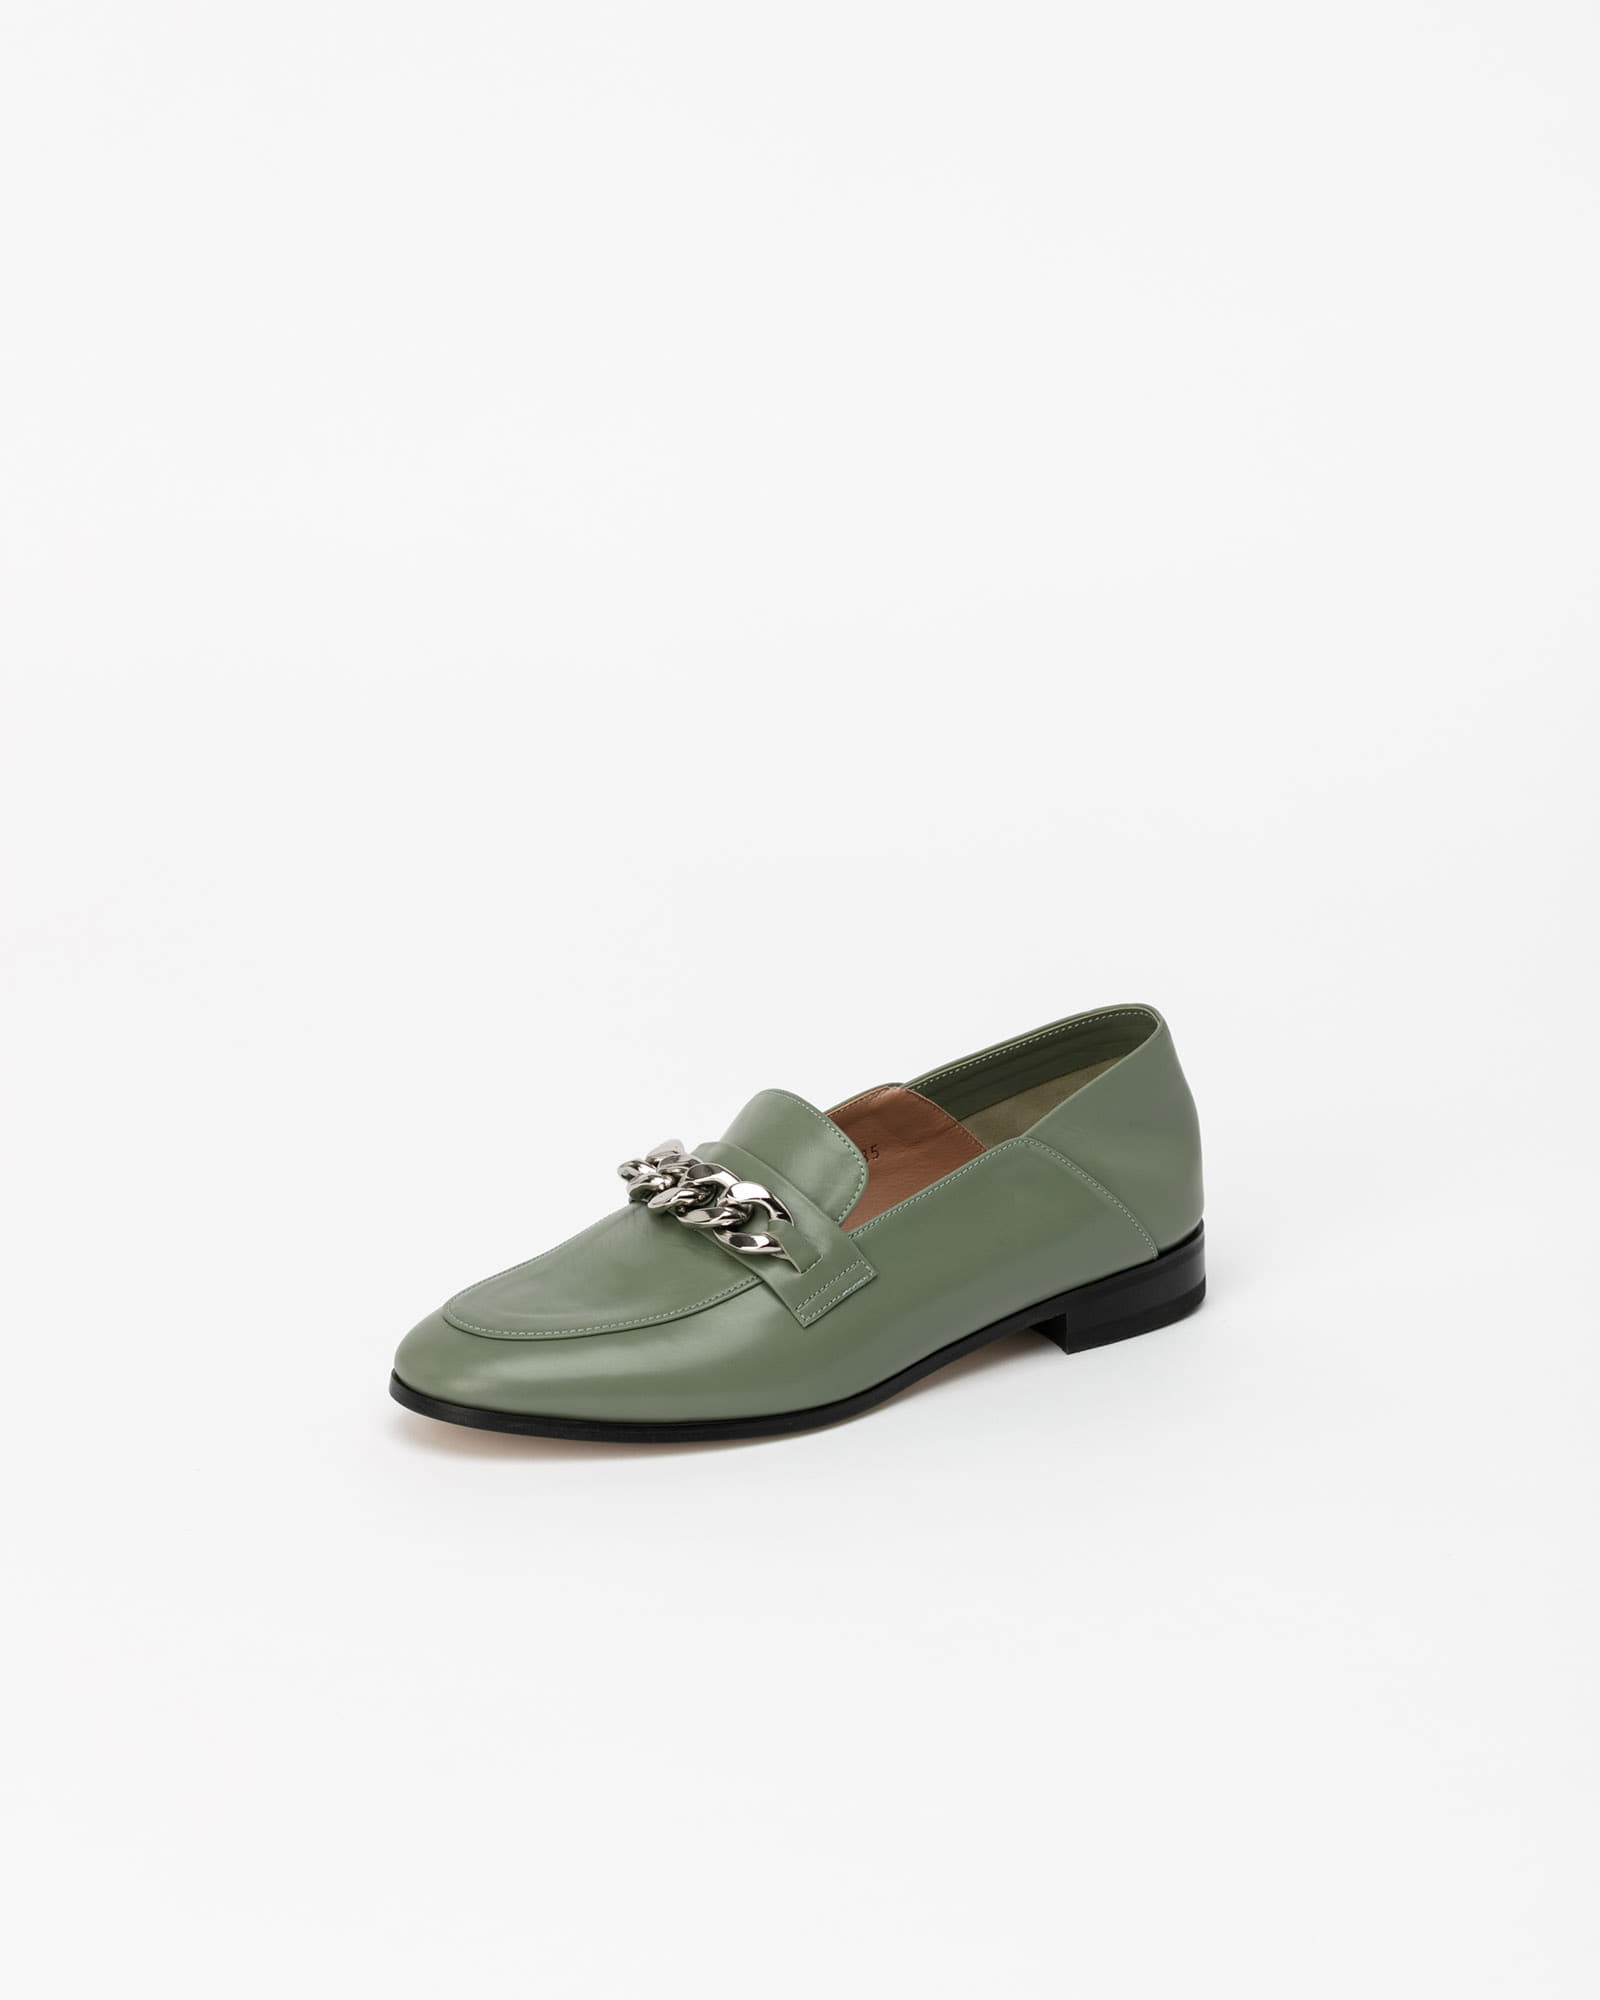 Gaia Chained Loafers in Mint Calf